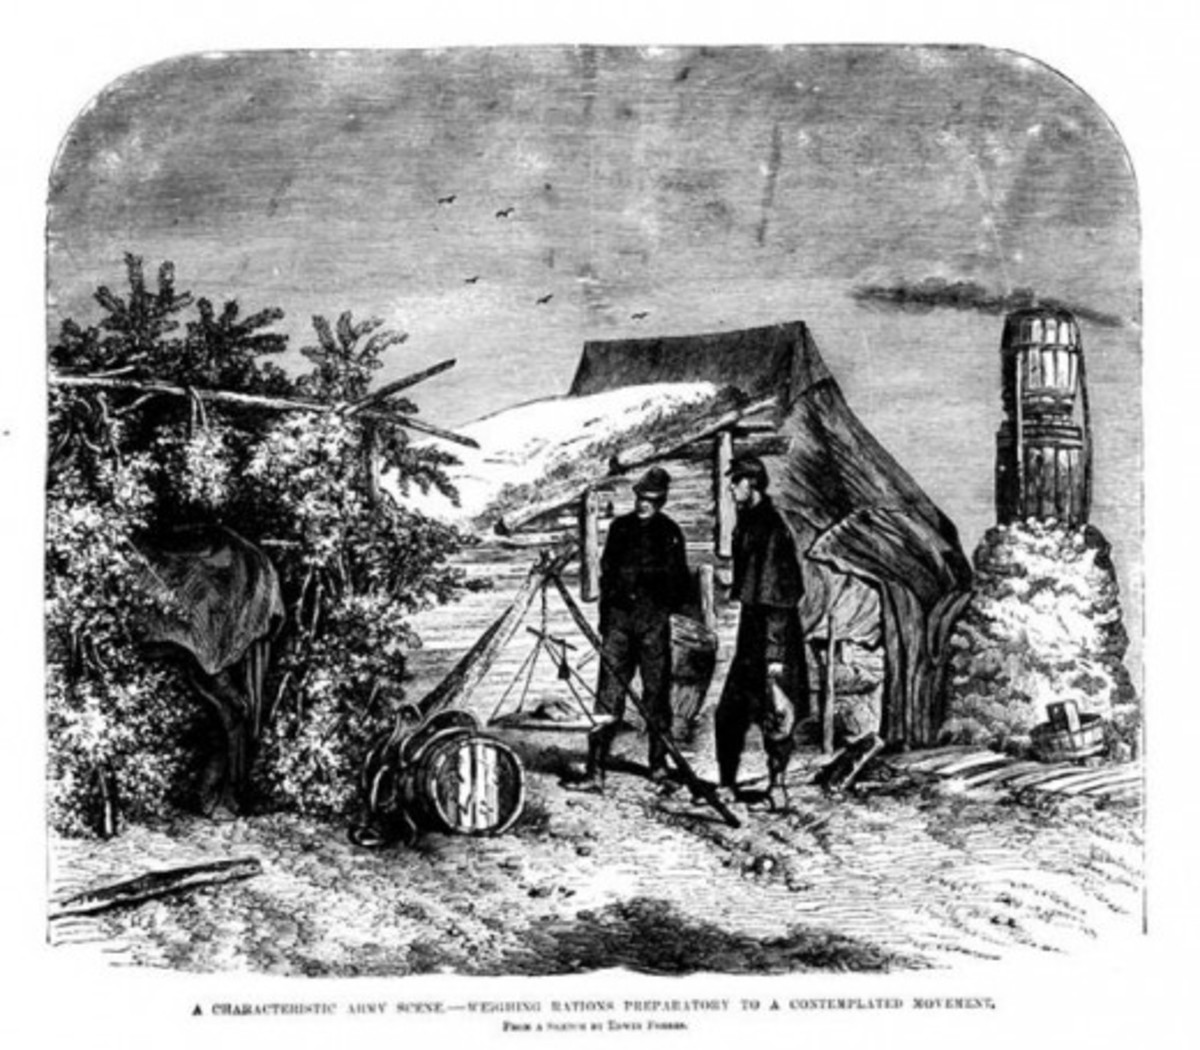 Commissary men weighing the ration allotments